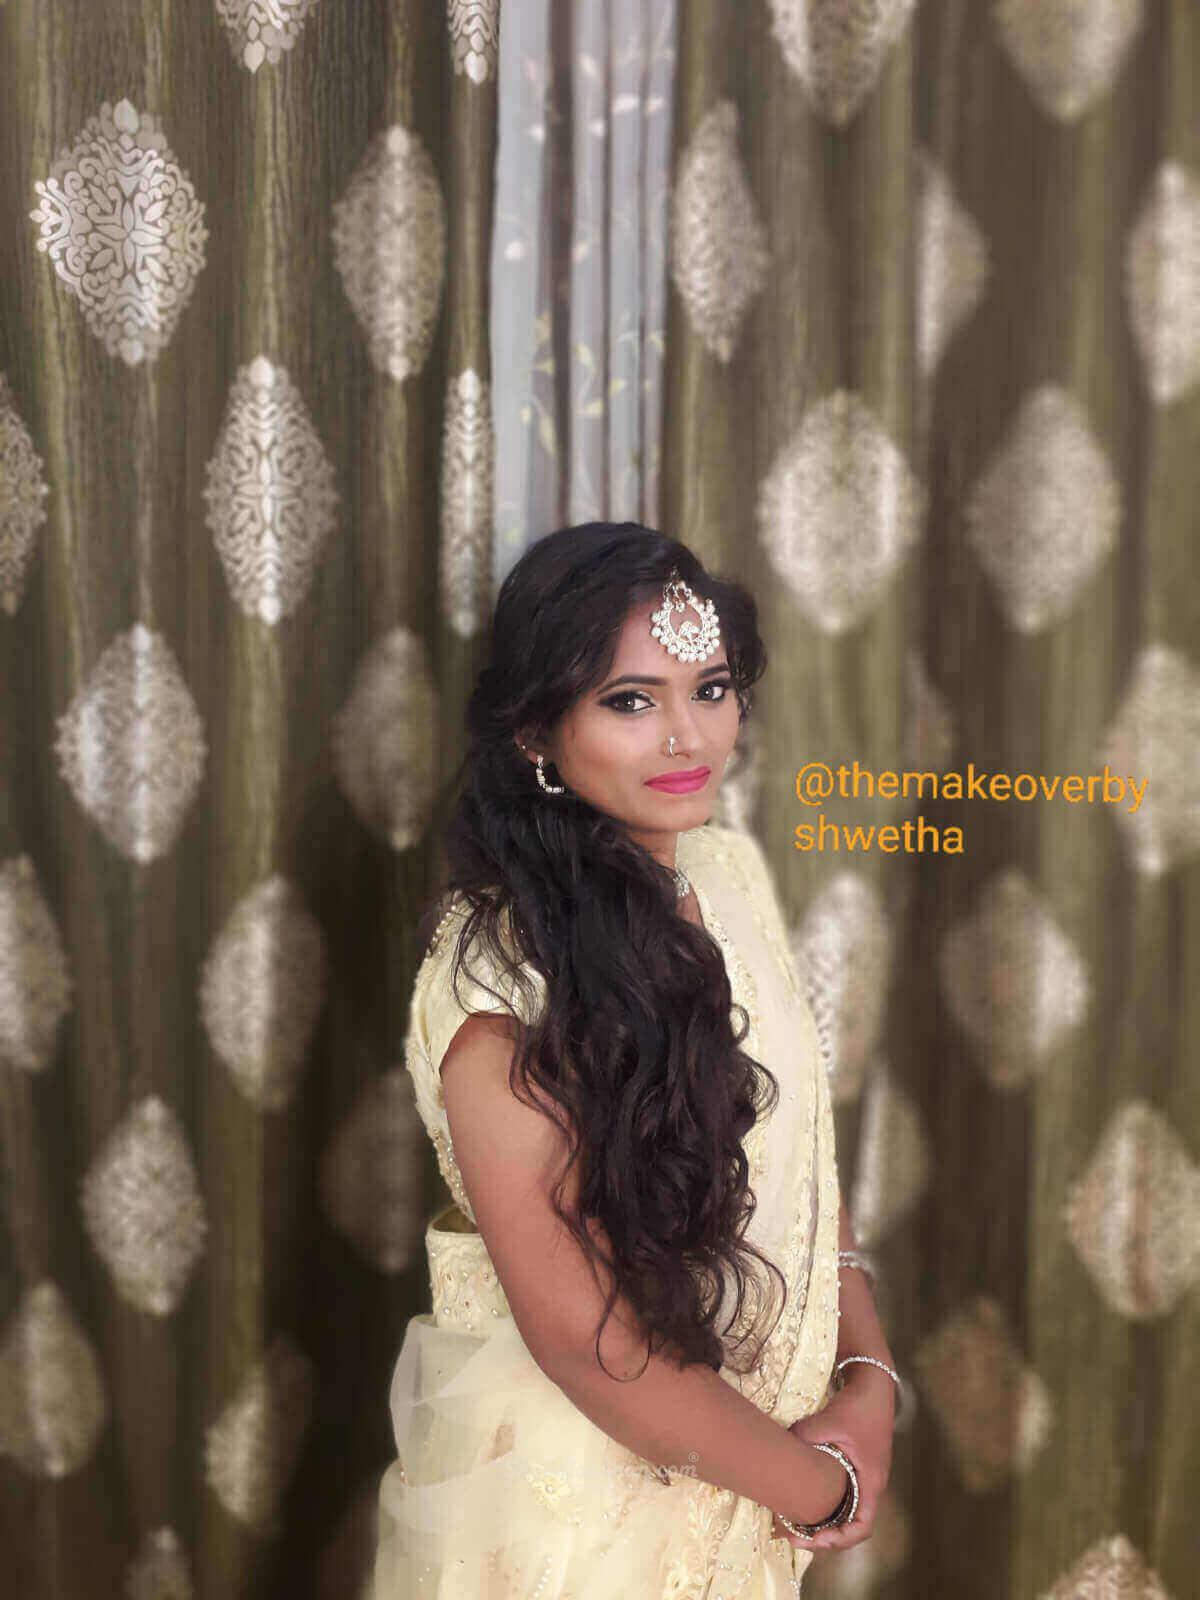 The Makeover By Shwetha